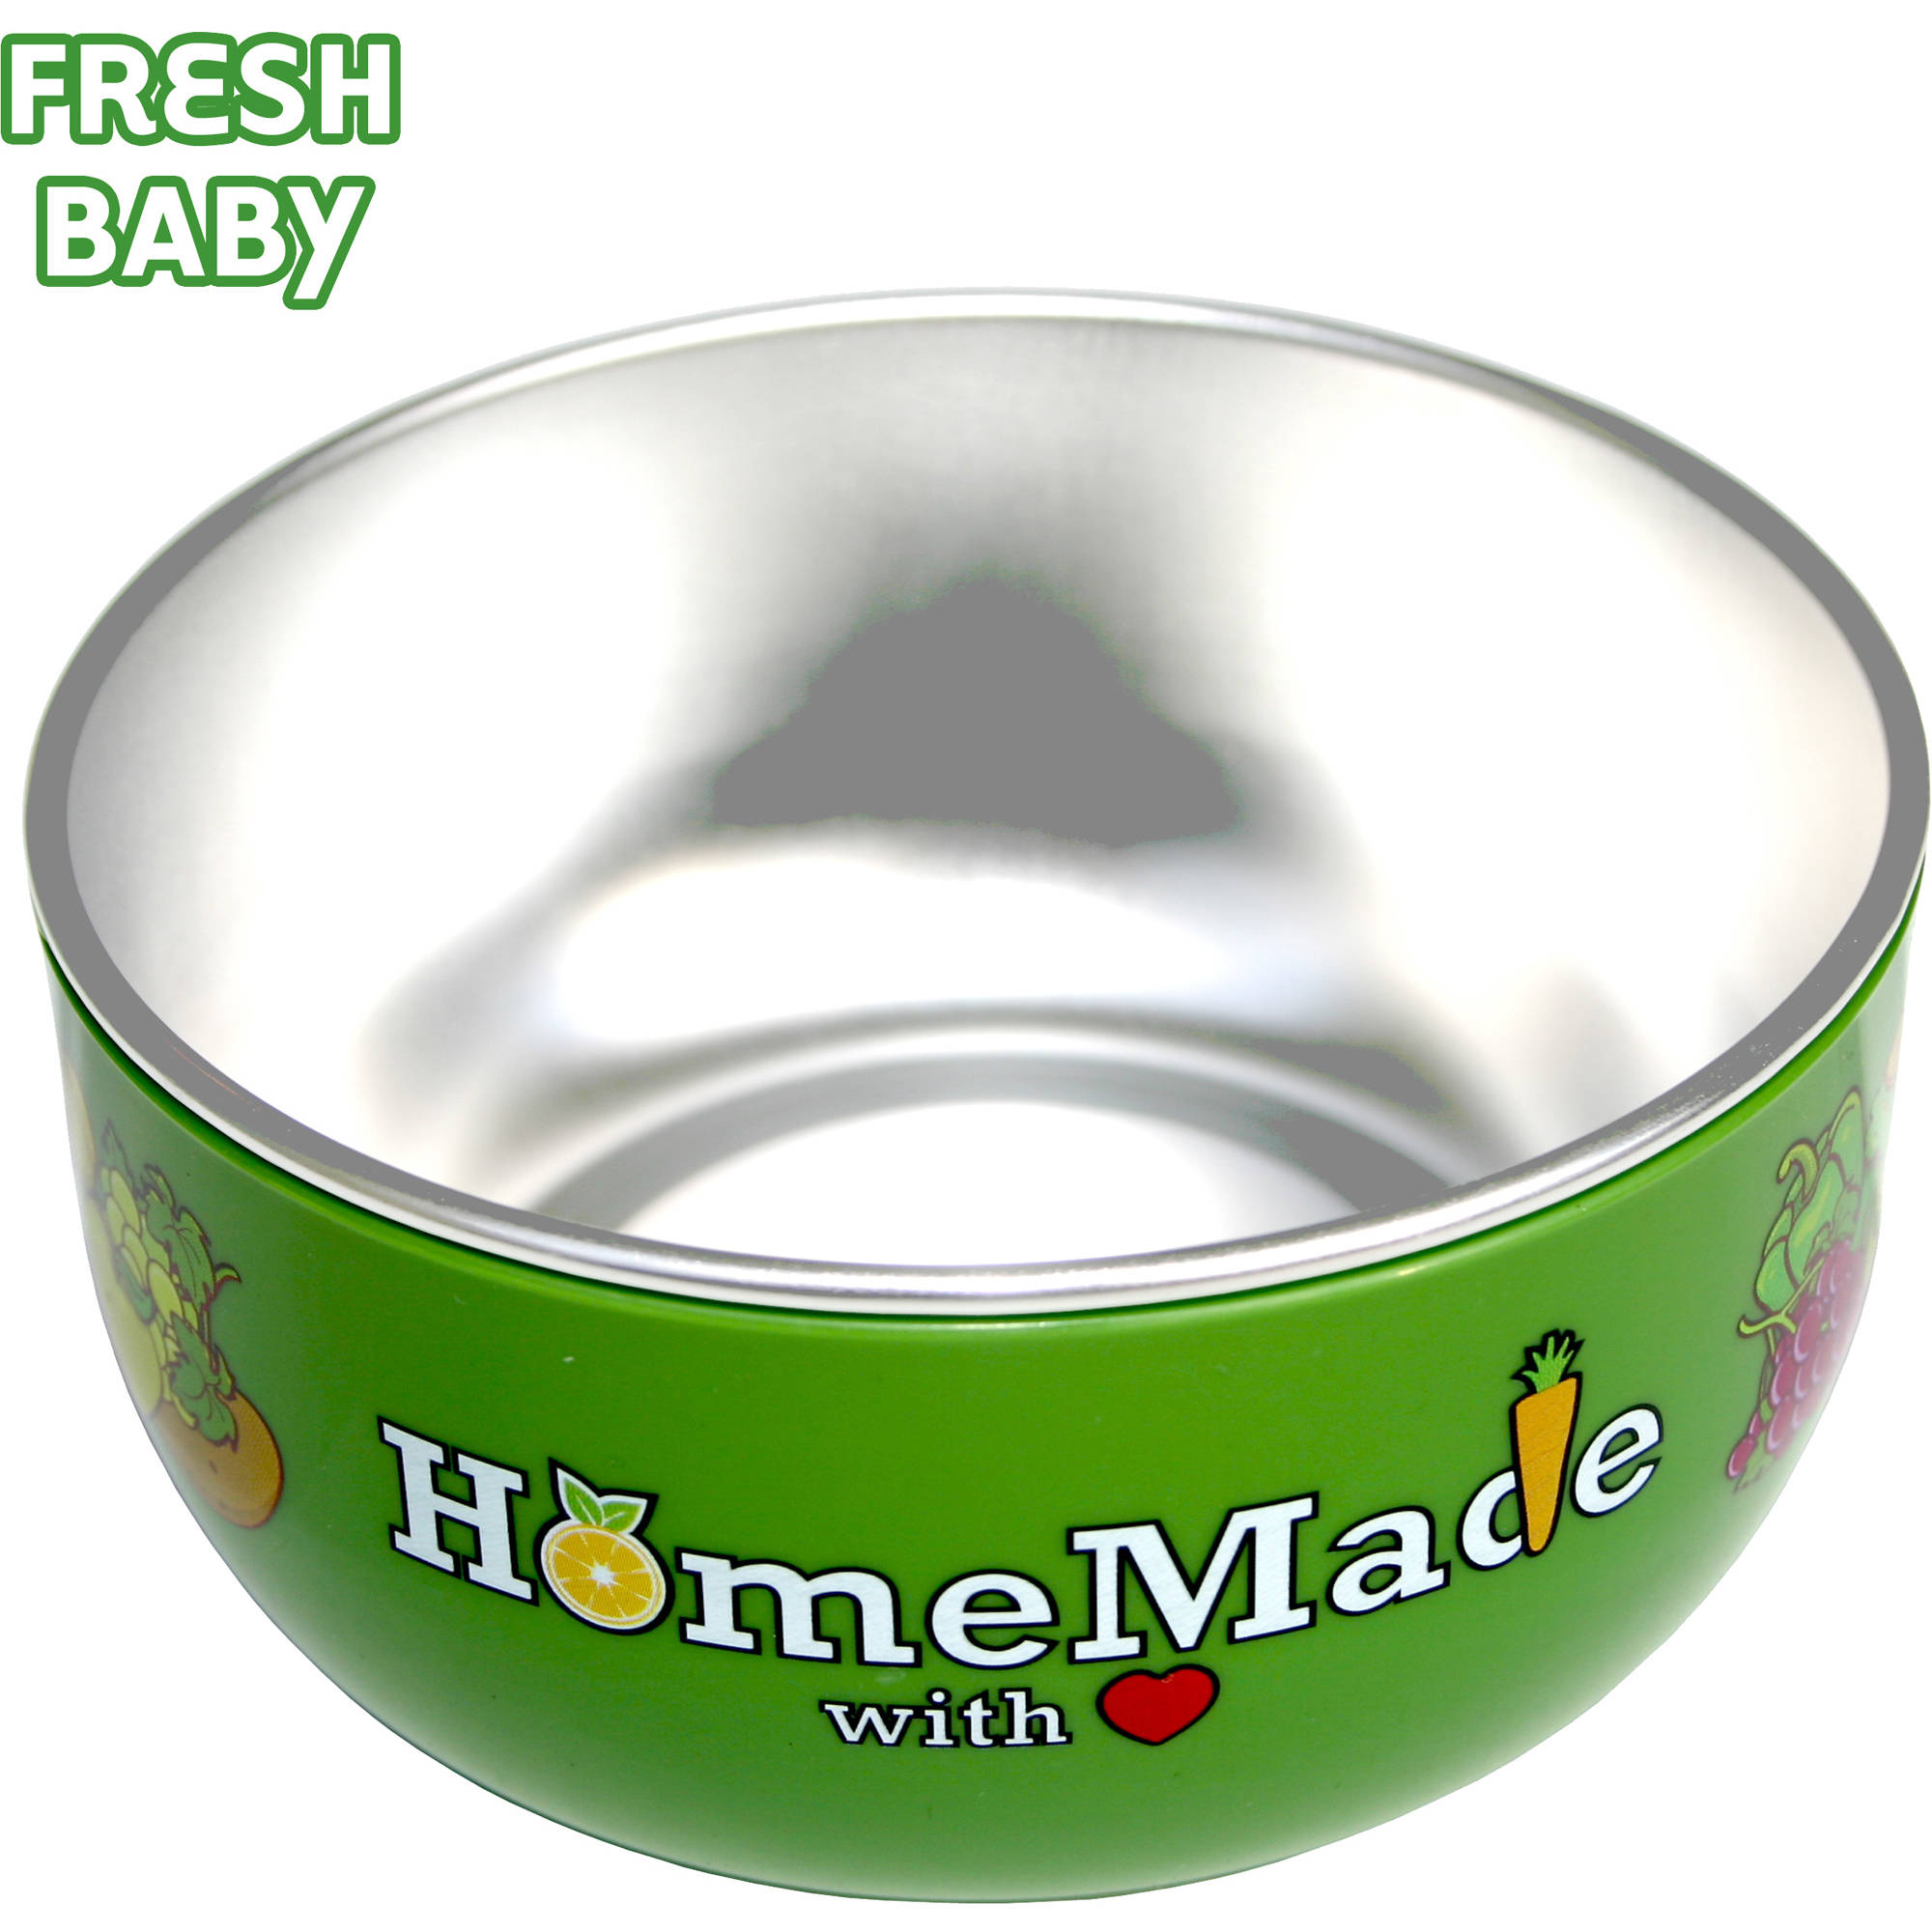 Fresh Baby - So Easy Baby Bowl with Lid, BPA-Free